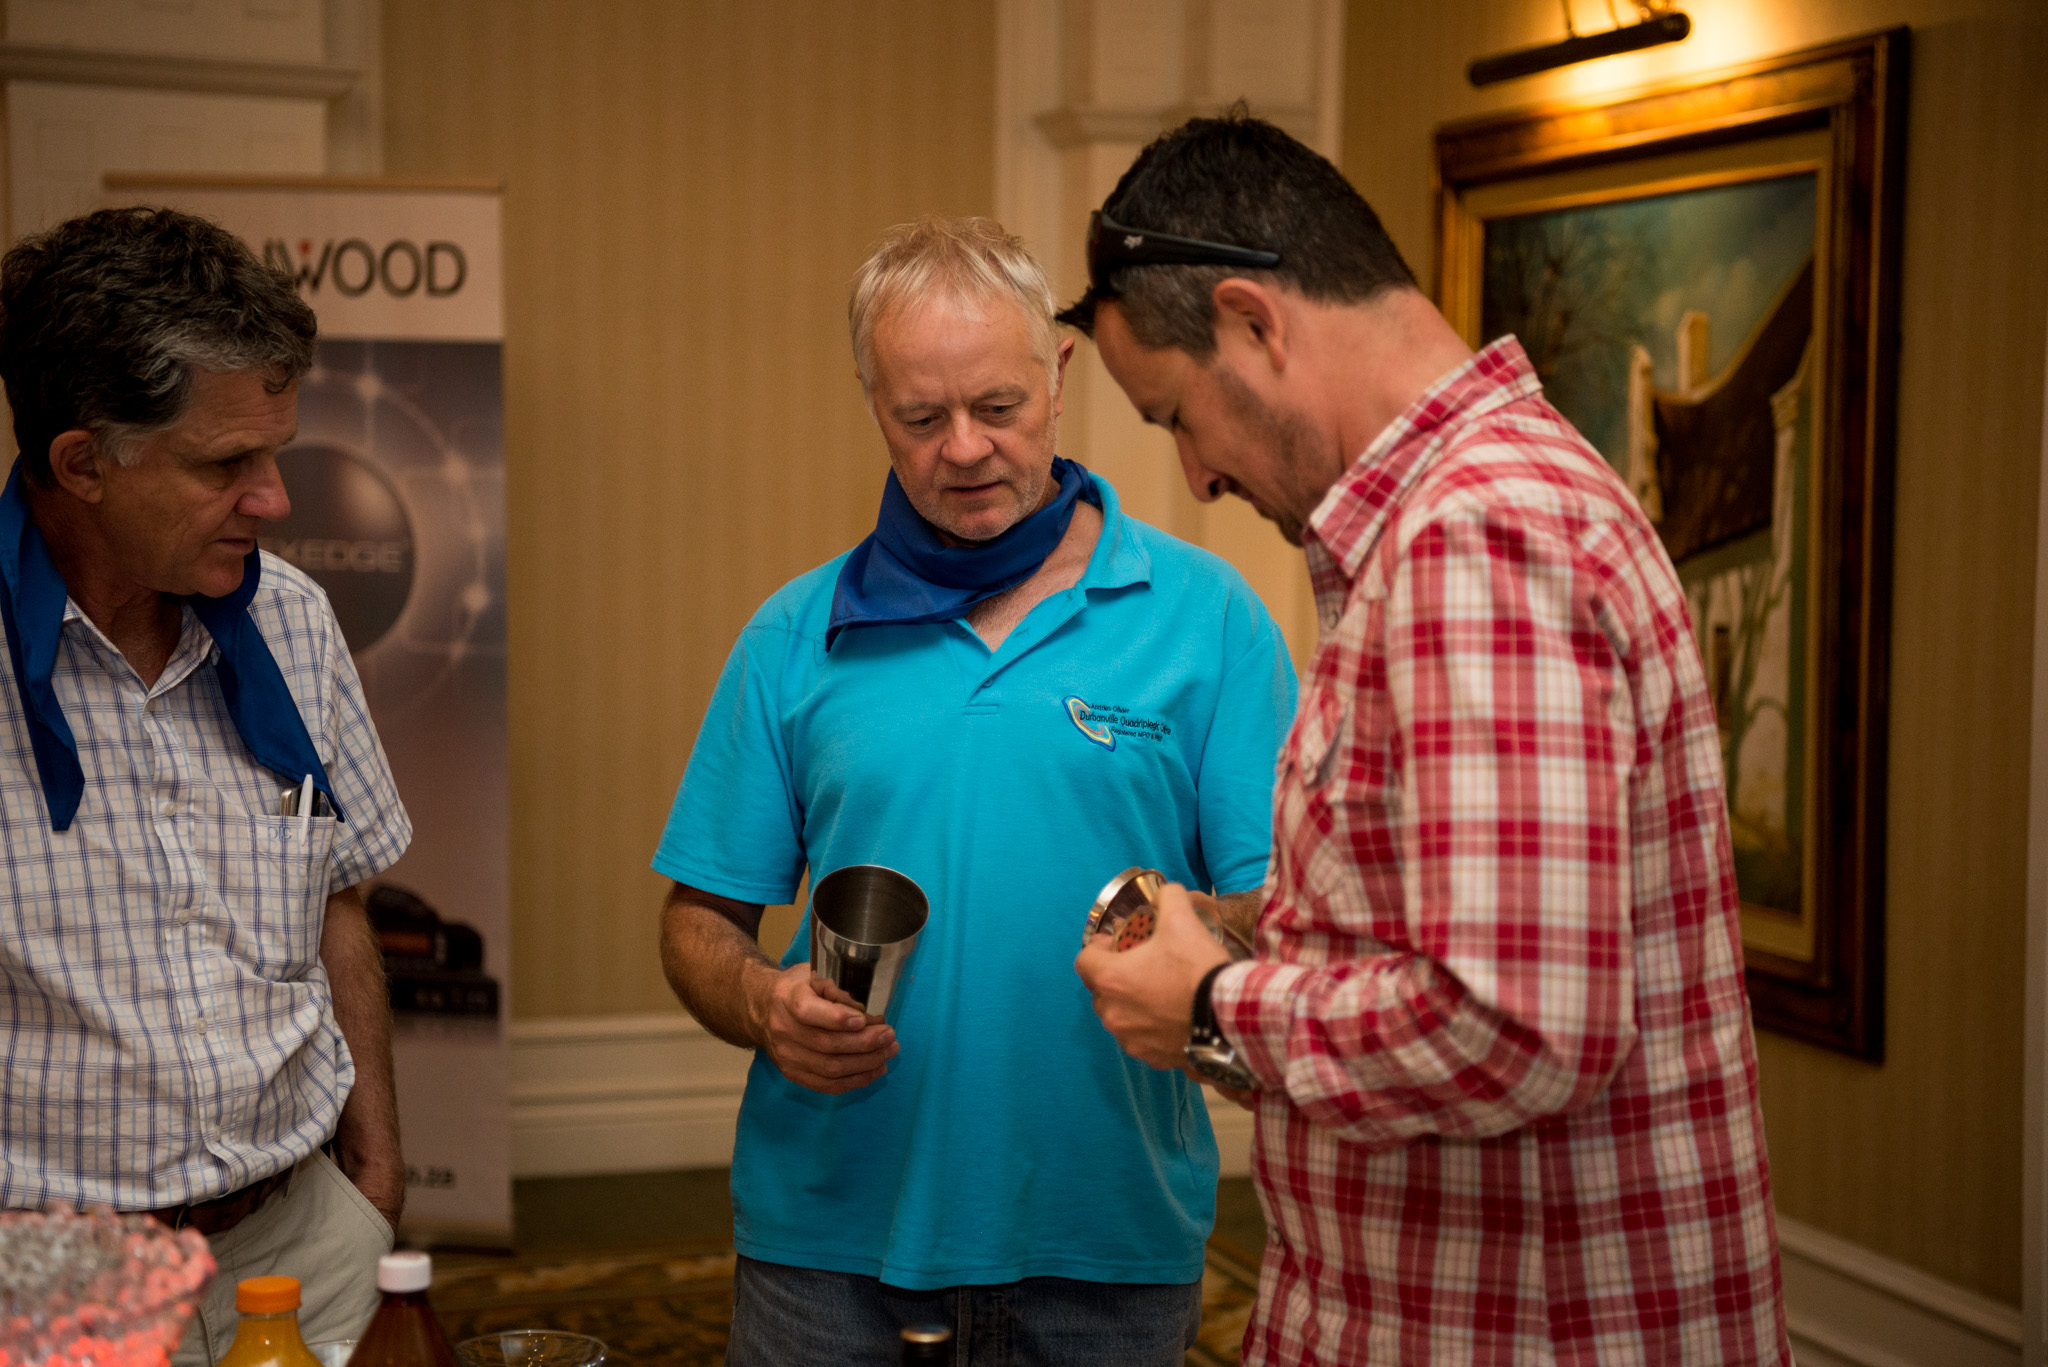 CPT-2016-roadshow (218 of 327).jpg